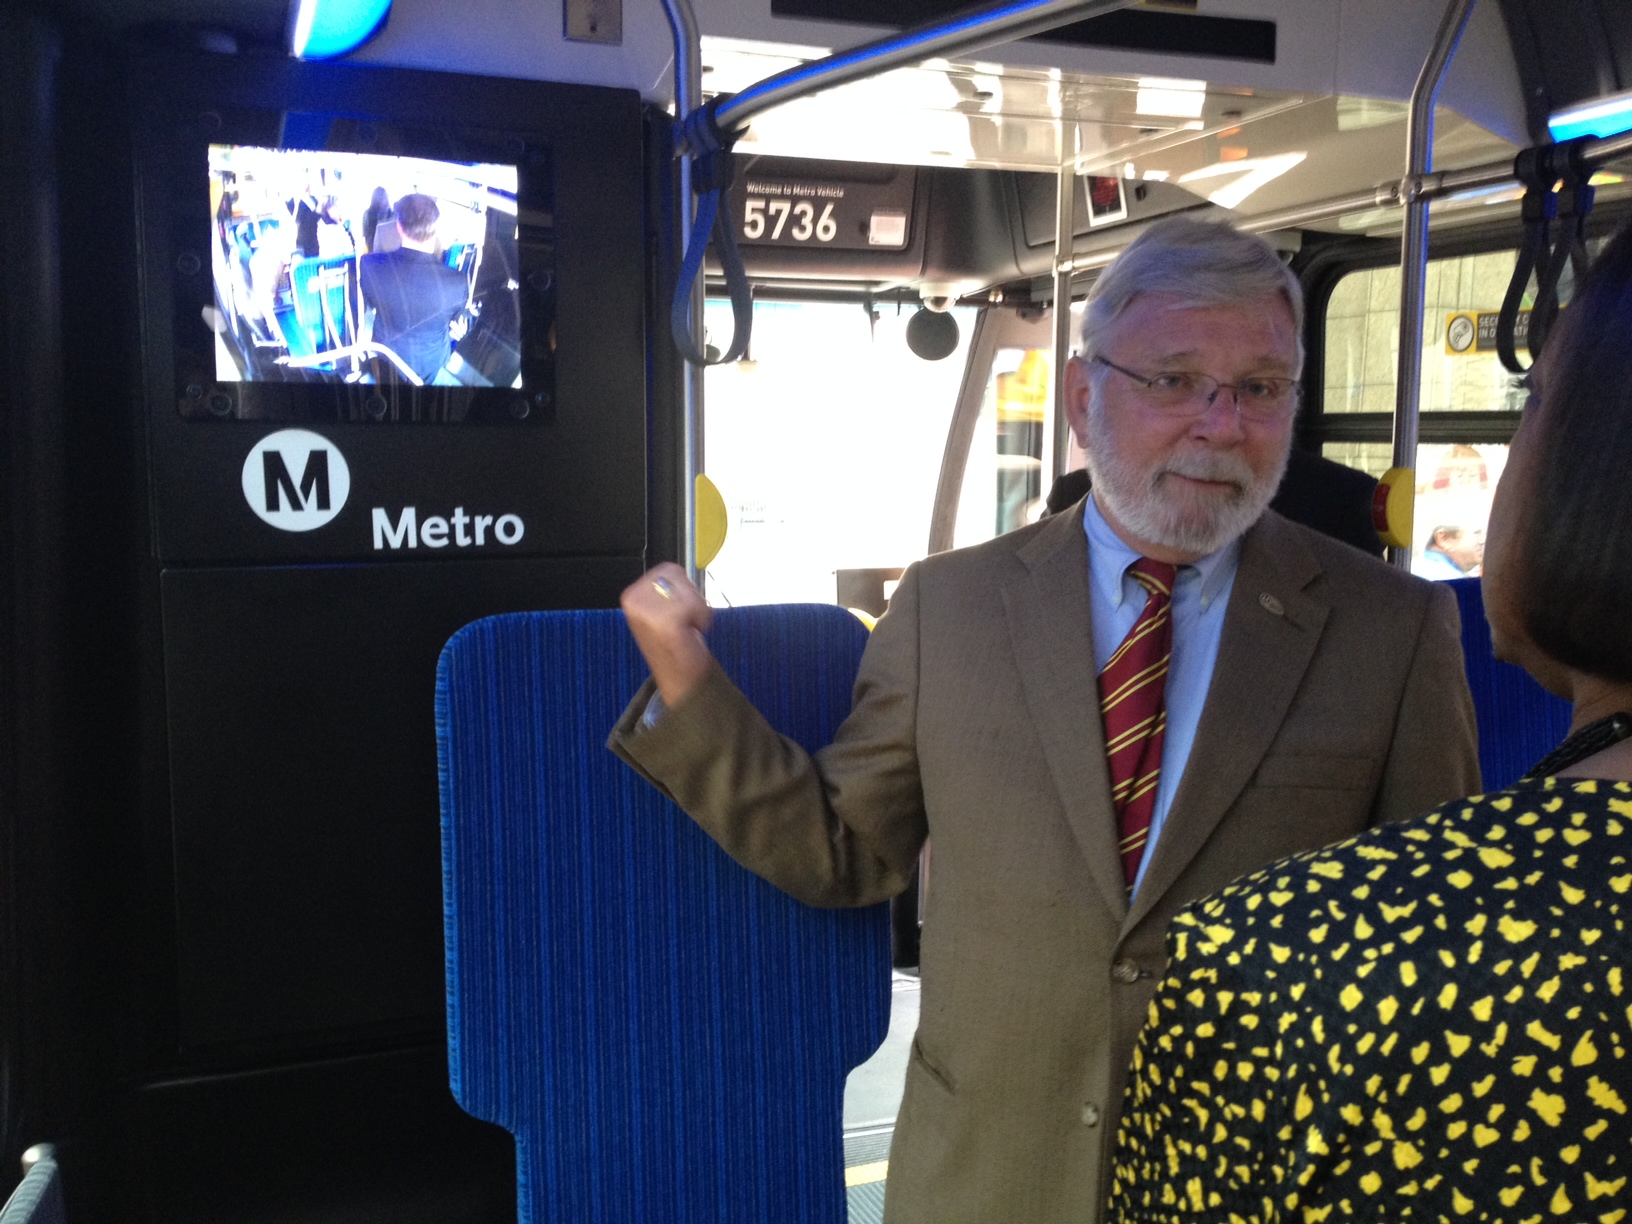 Metro CEO Art Leahy showing the new security video screen on board a Metro bus. Photo: Paul Gonzales/Metro